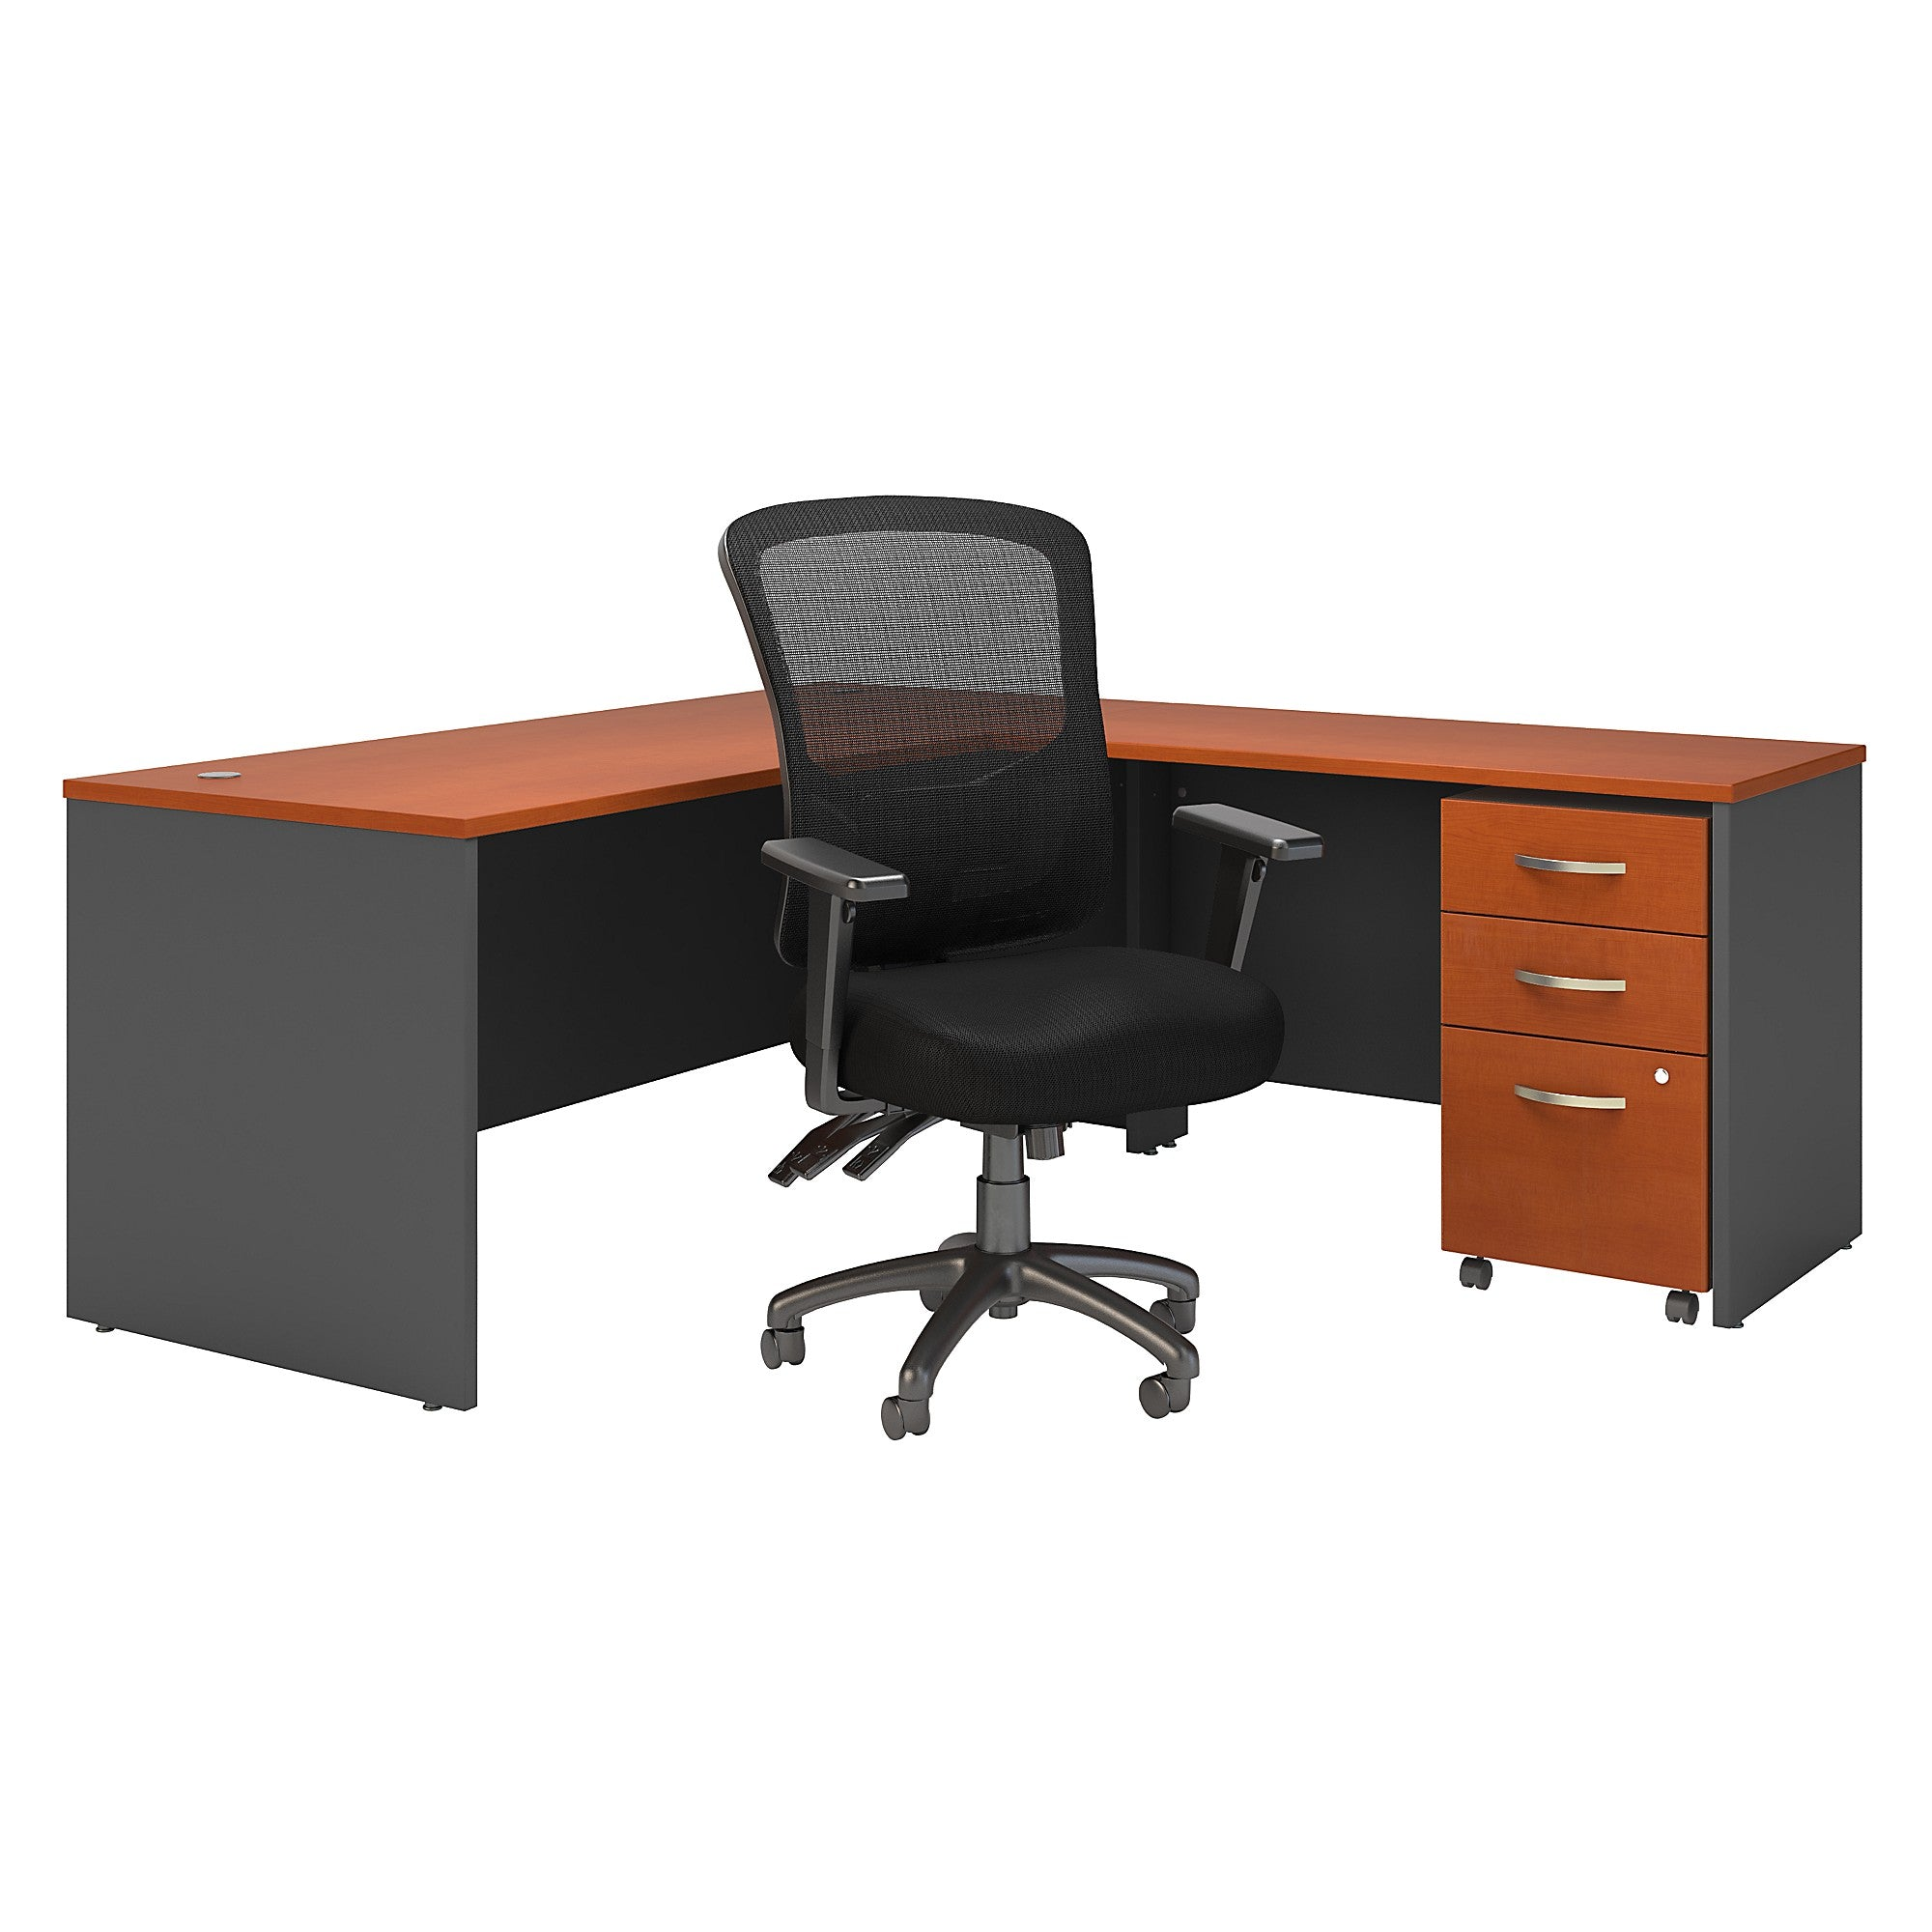 Series C 72W L Shaped Desk with Mobile File Cabinet & High Back Chair